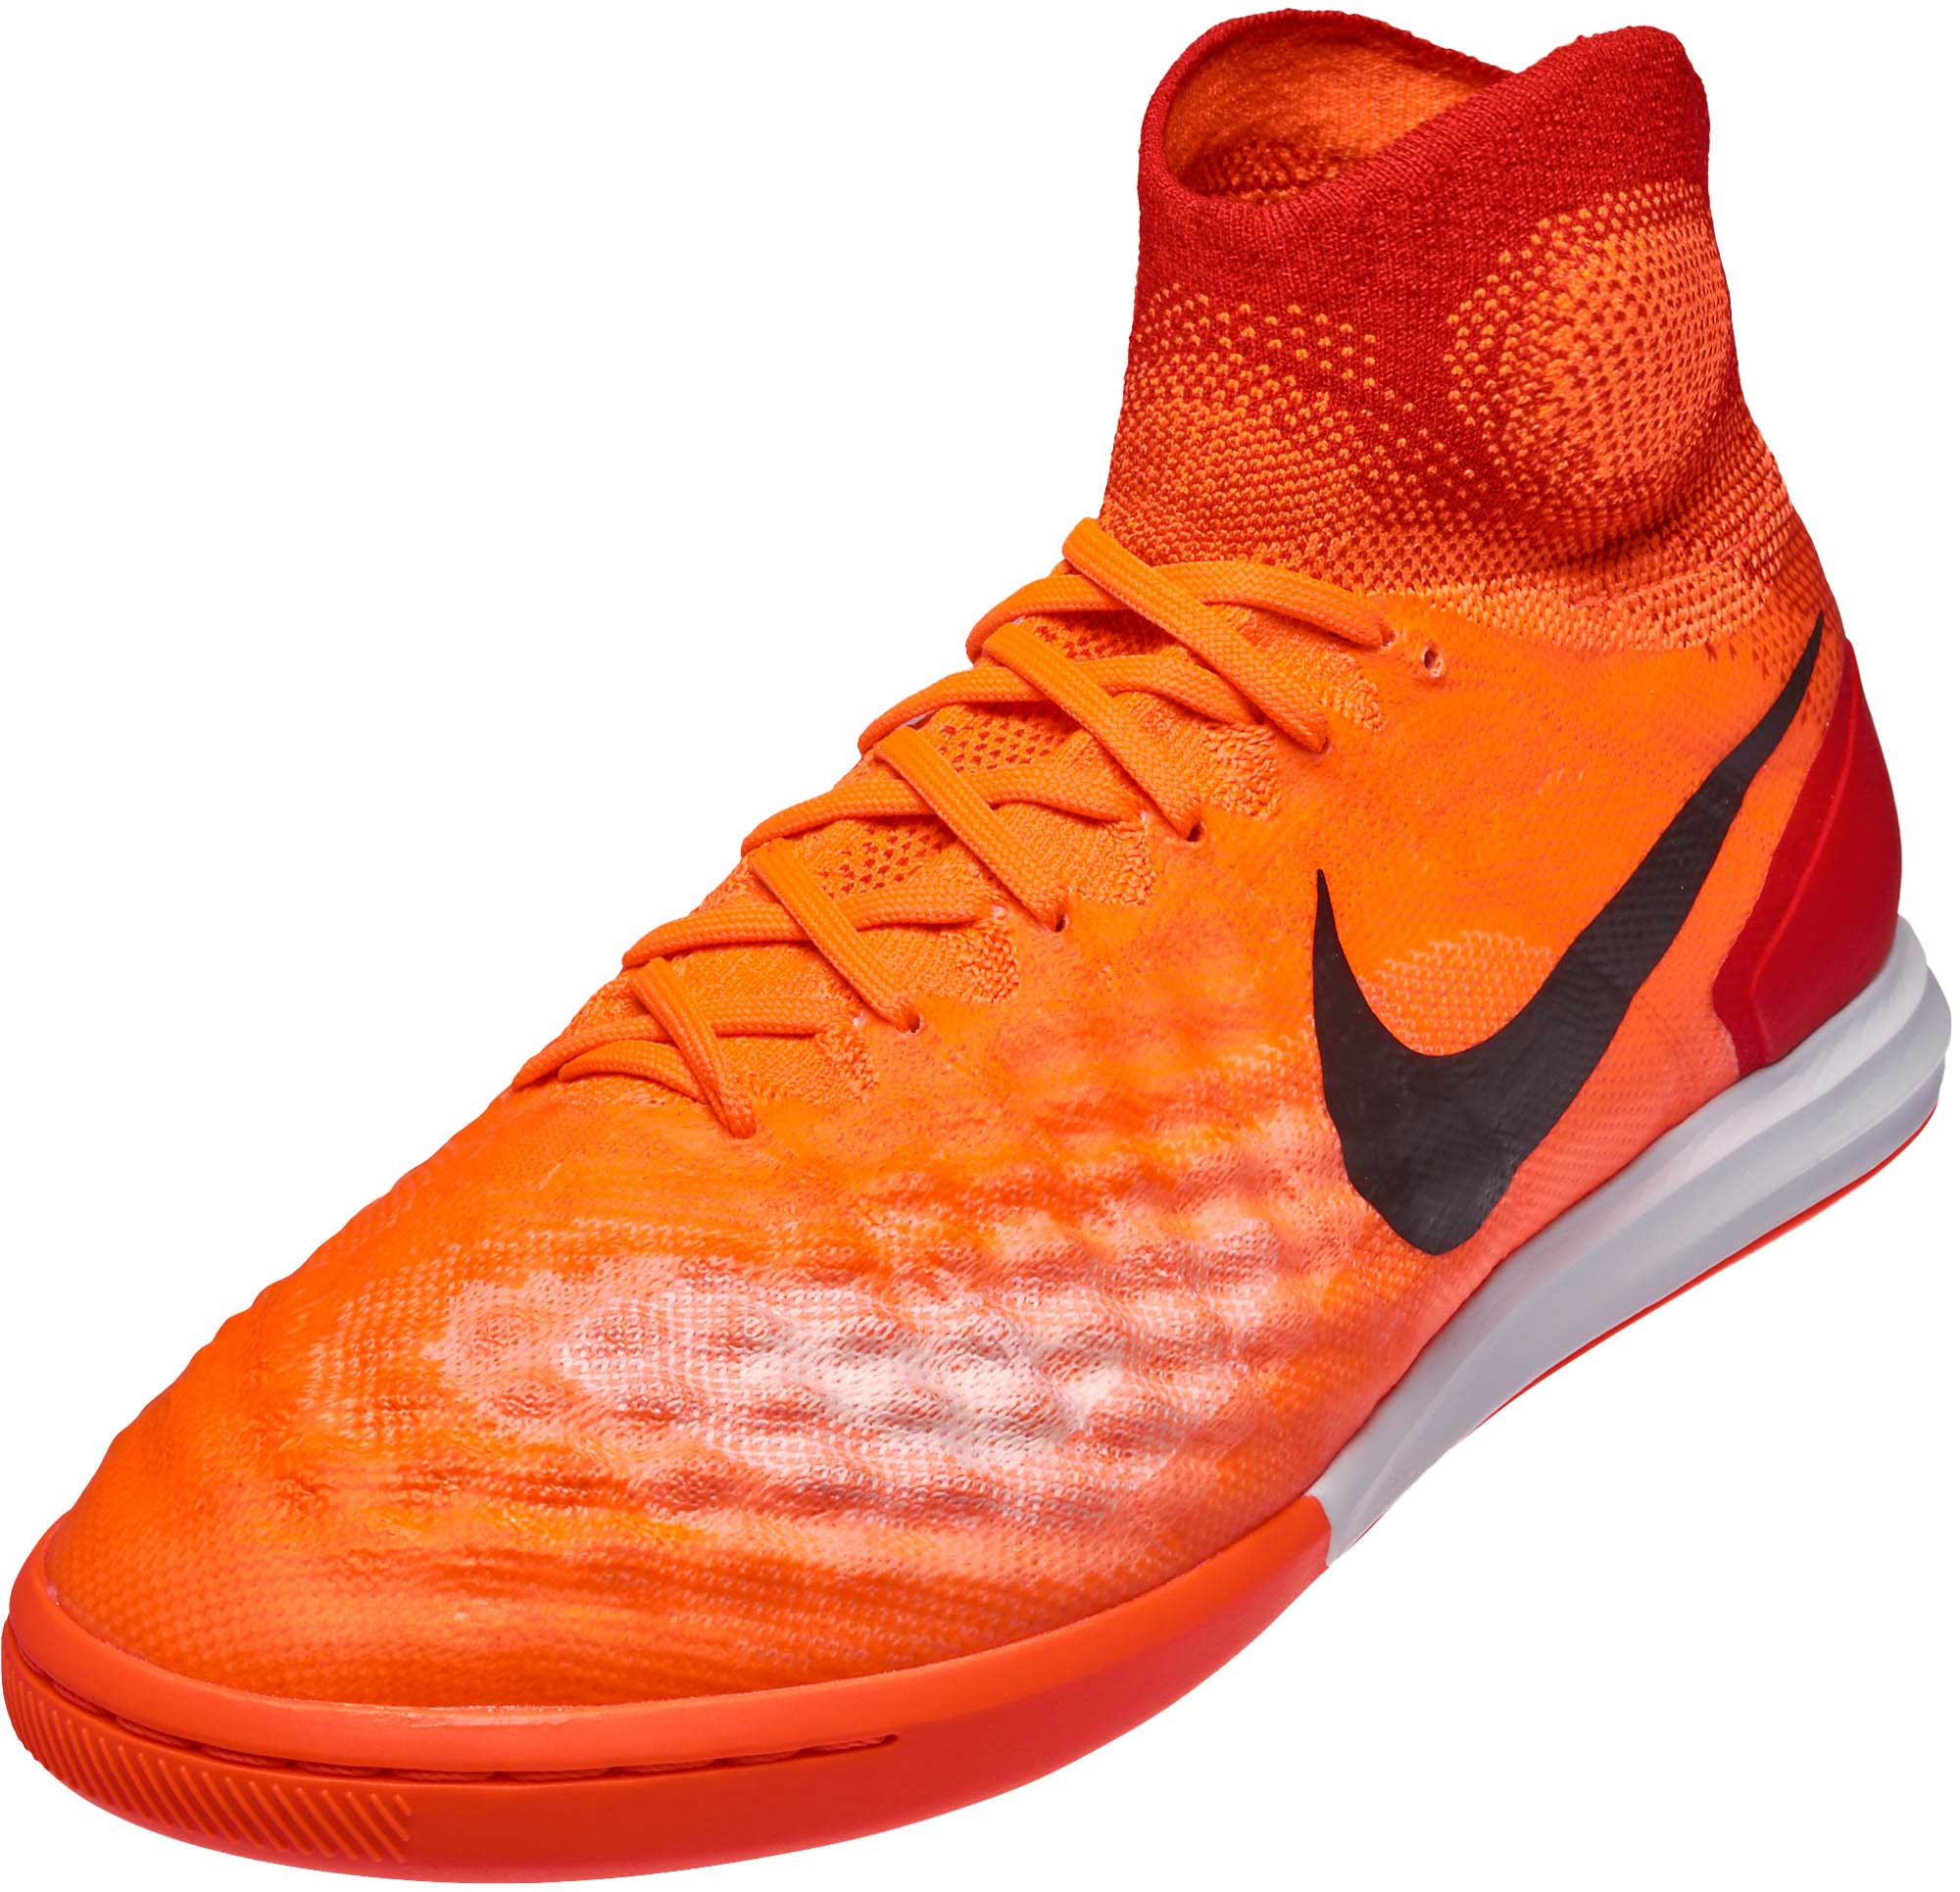 Nike MagistaX Proximo II IC – Total Crimson University Red ff214b229a